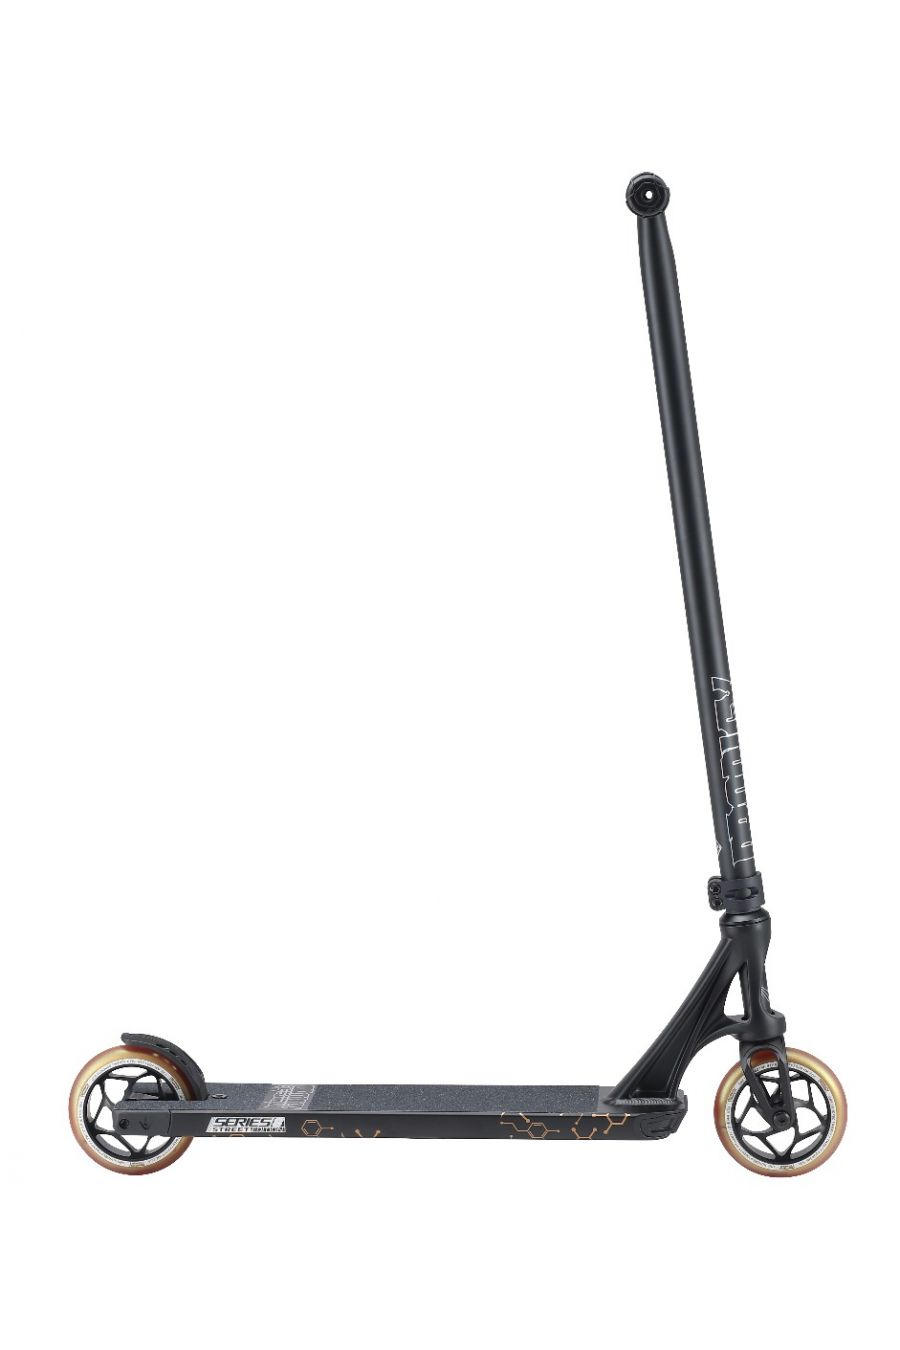 Envy Prodigy S8 Complete Scooter (Street Black)